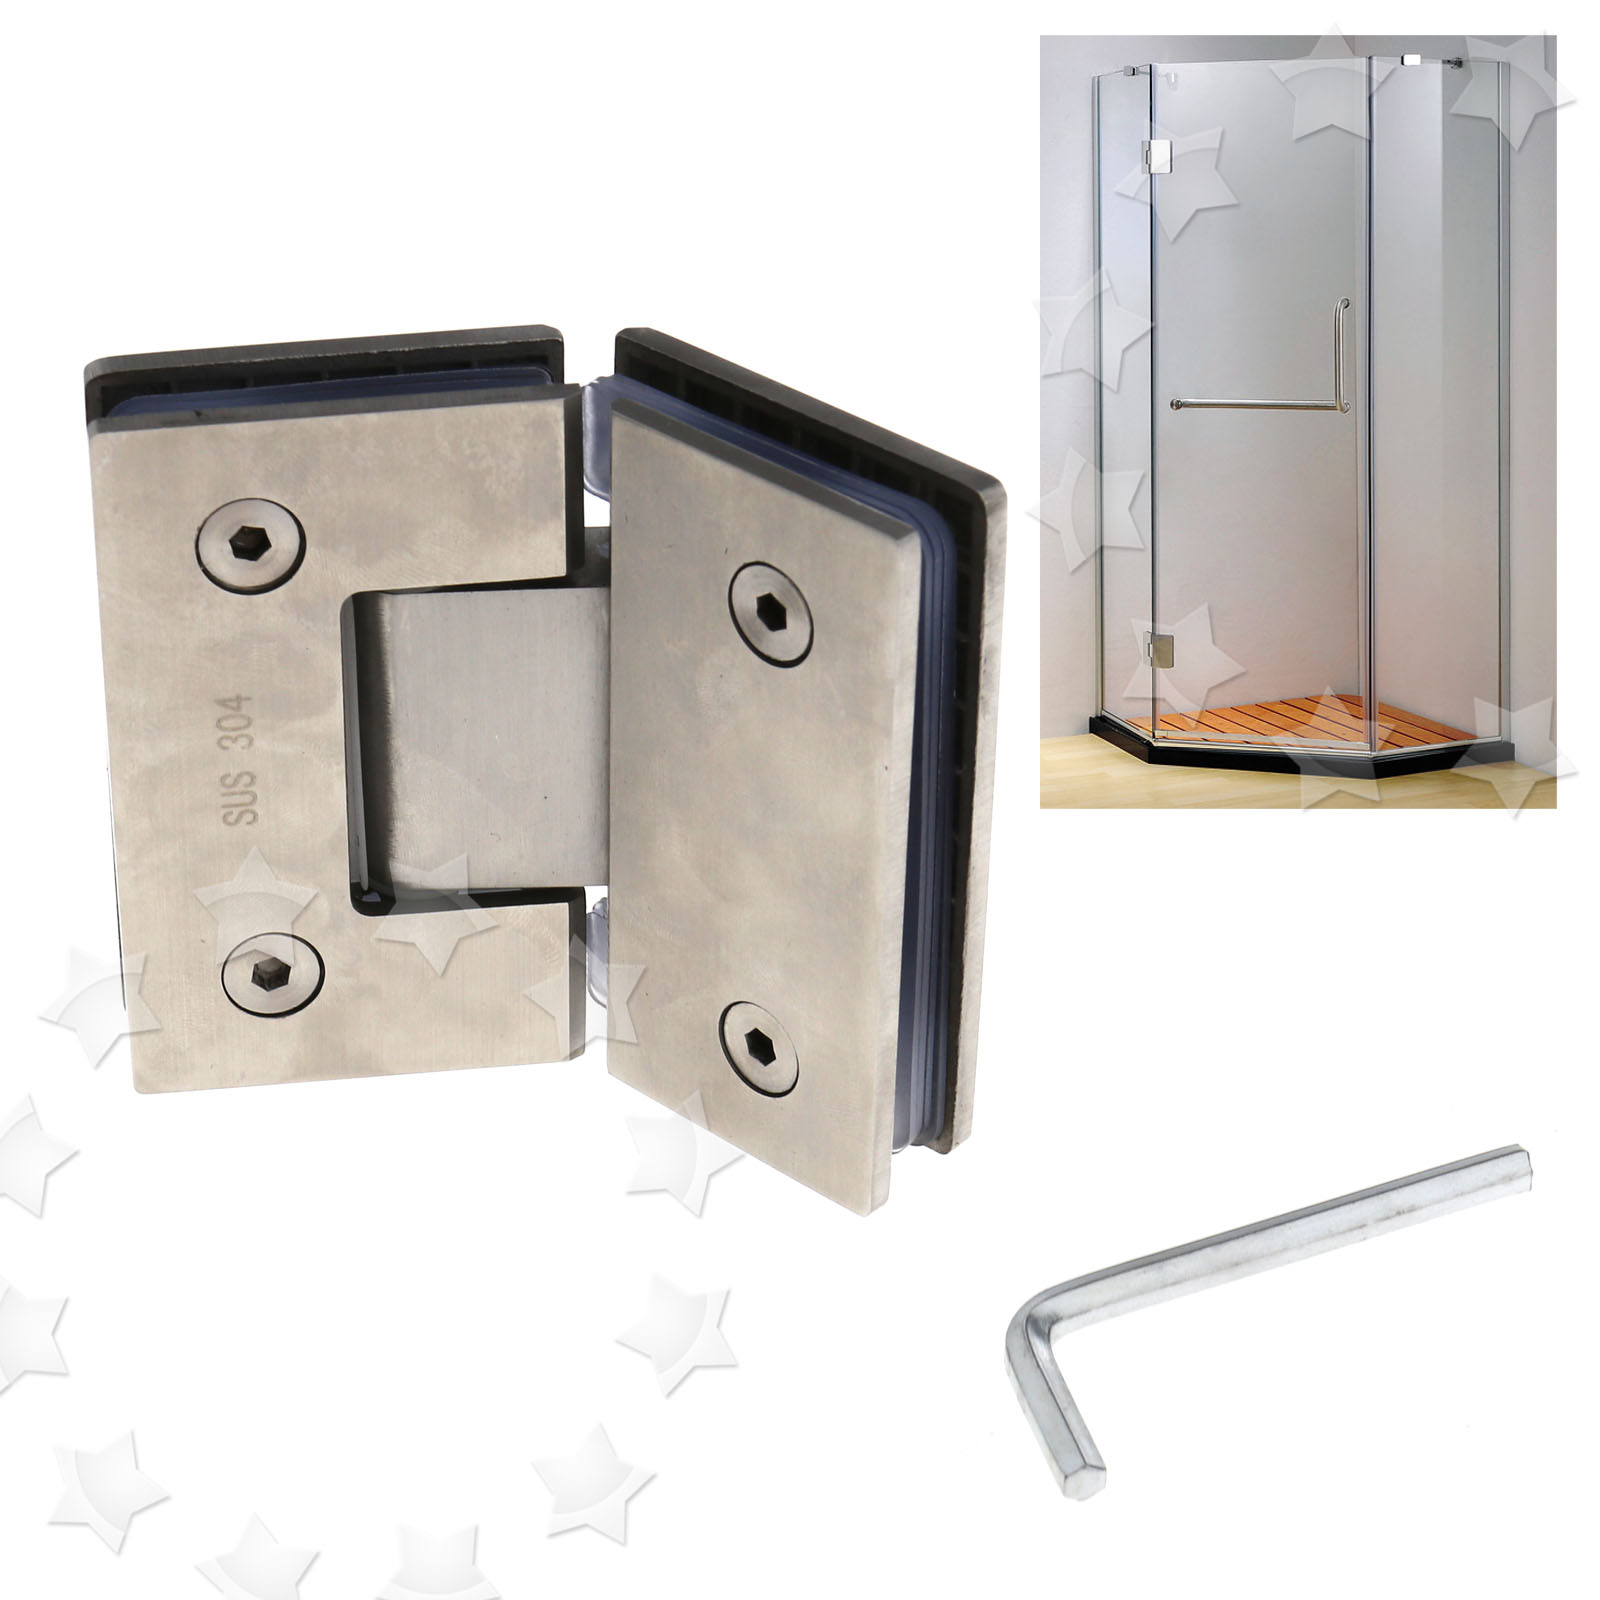 Details About 304 Stainless Steel Frameless Glass To Shower Door Hinge Chrome Plated Bracket